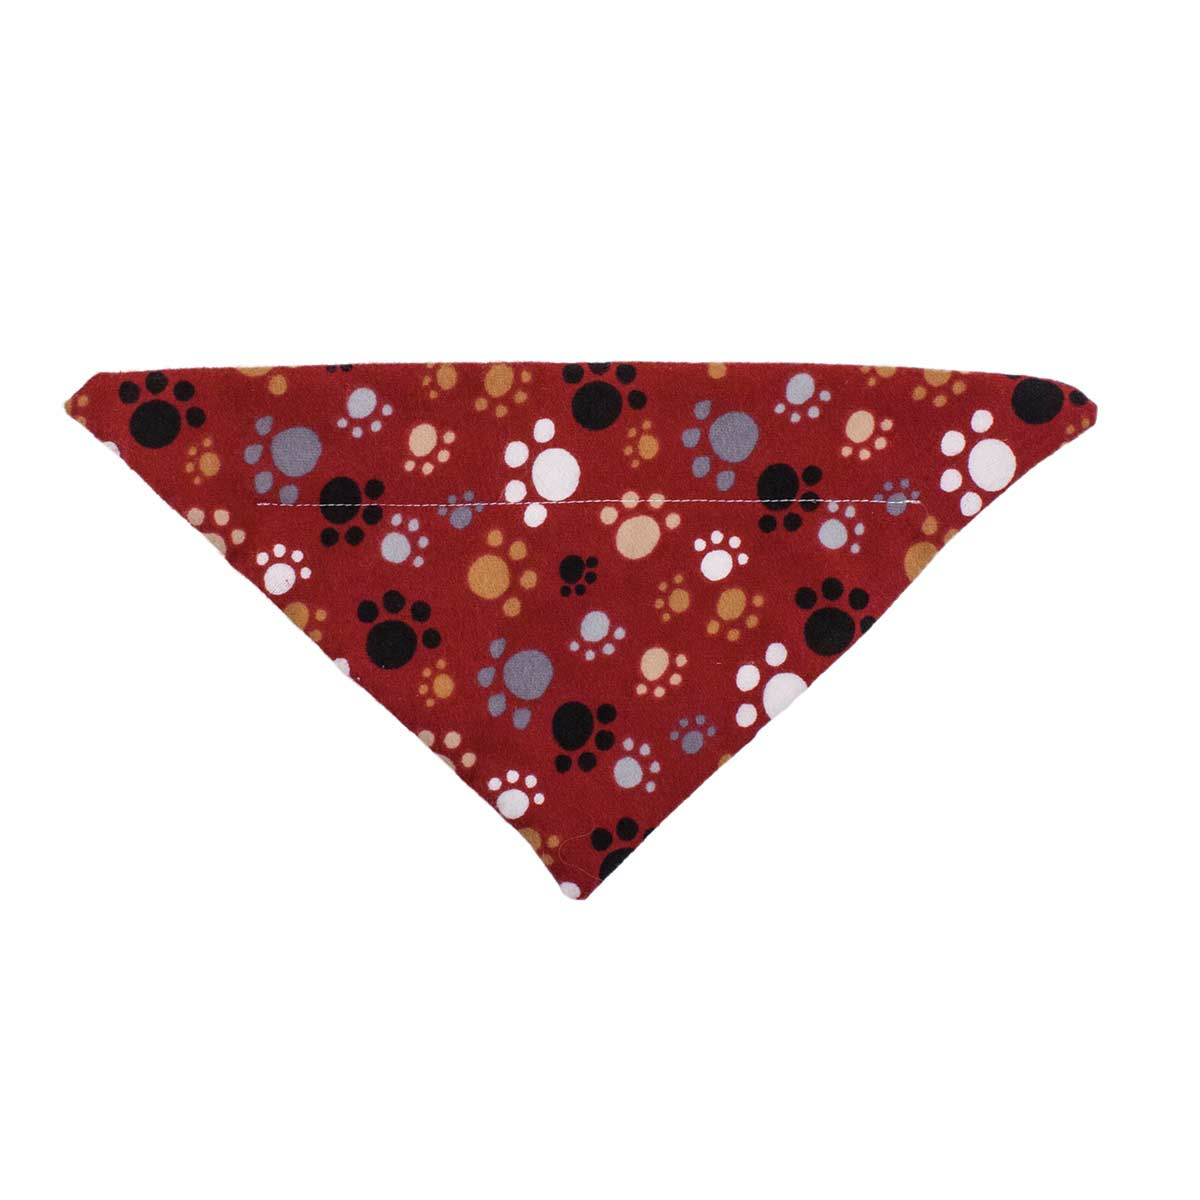 Flannel Puppy Paws Small 9.75 inch Dog Collar Bandana